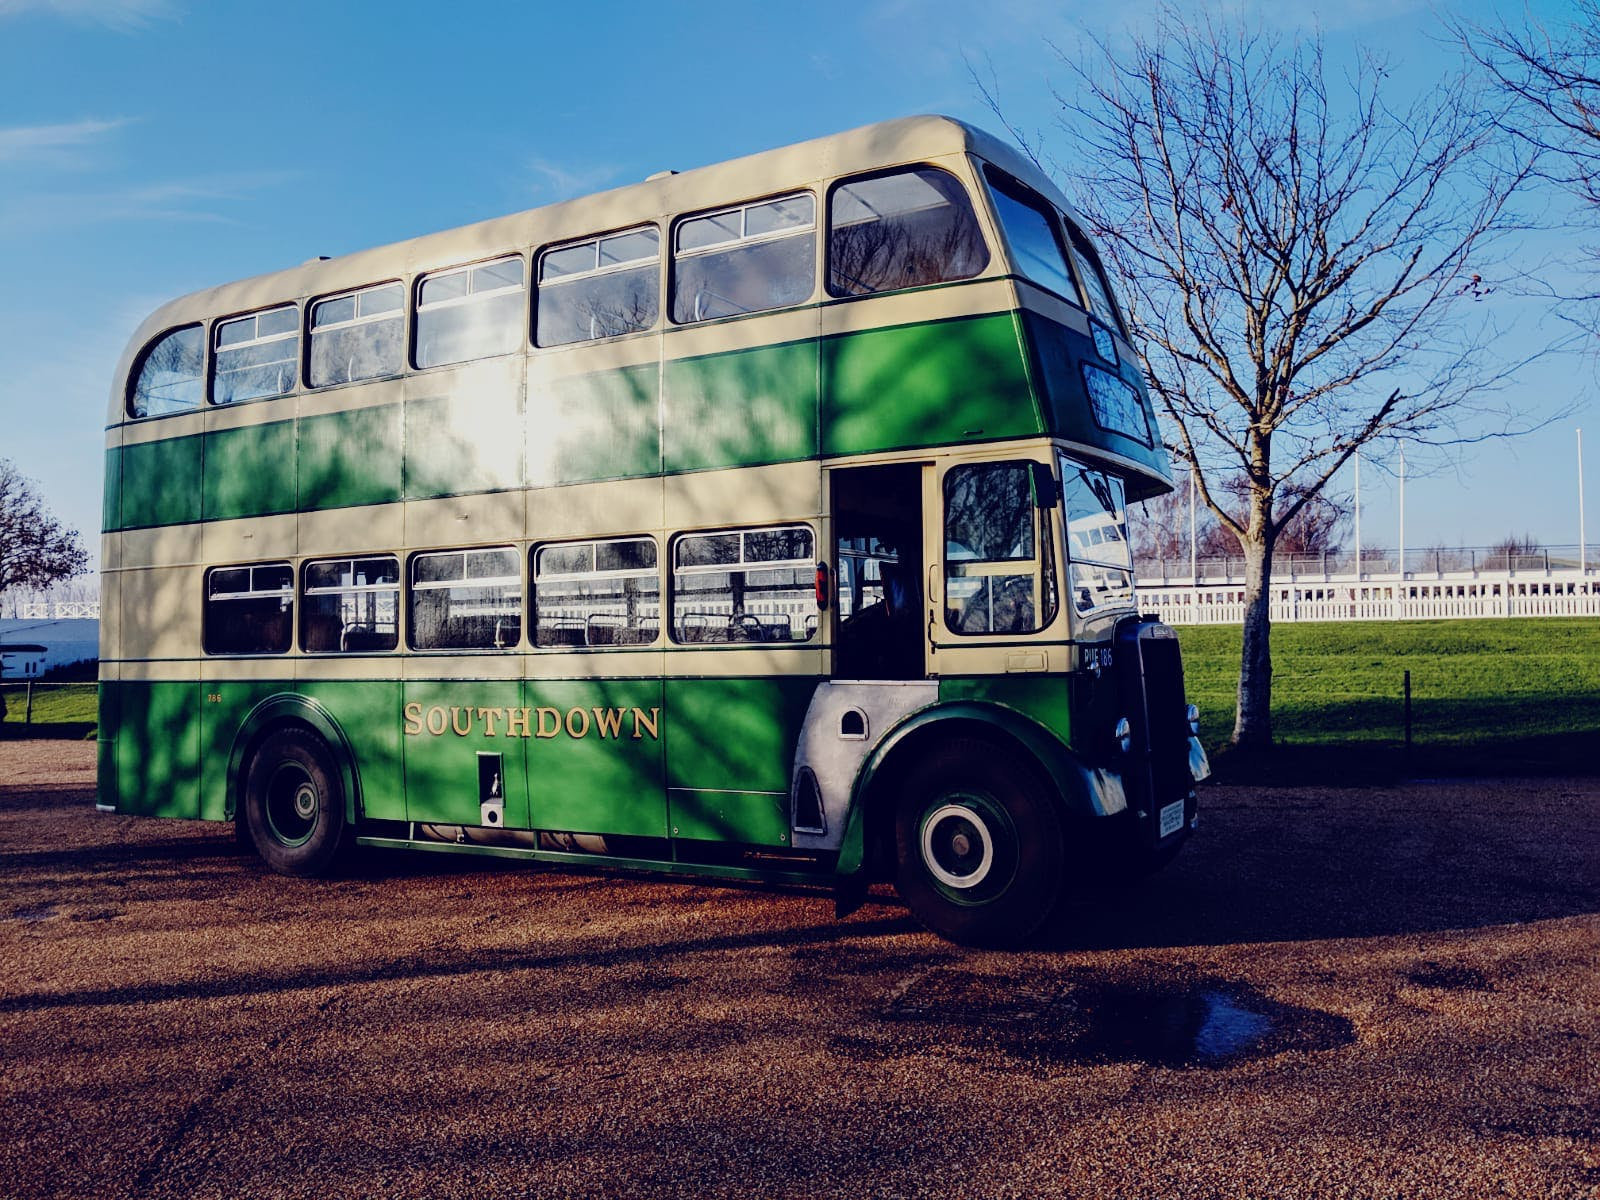 Vintage double-decker bus at Goodwood Estate